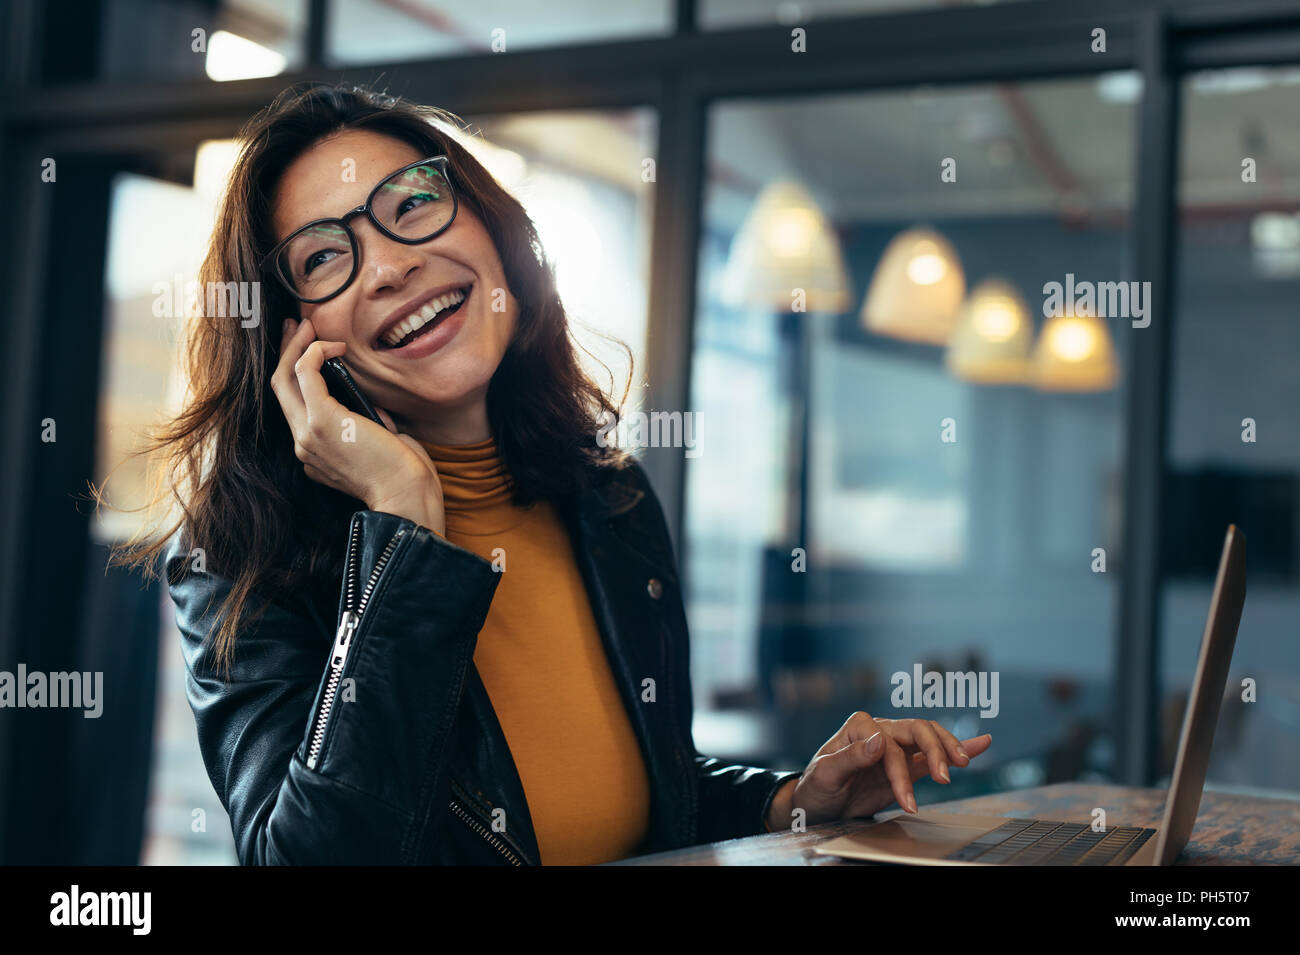 Cheerful asian female talking on mobile phone while sitting on desk with laptop. Business woman in casuals making a phone call and laughing. - Stock Image